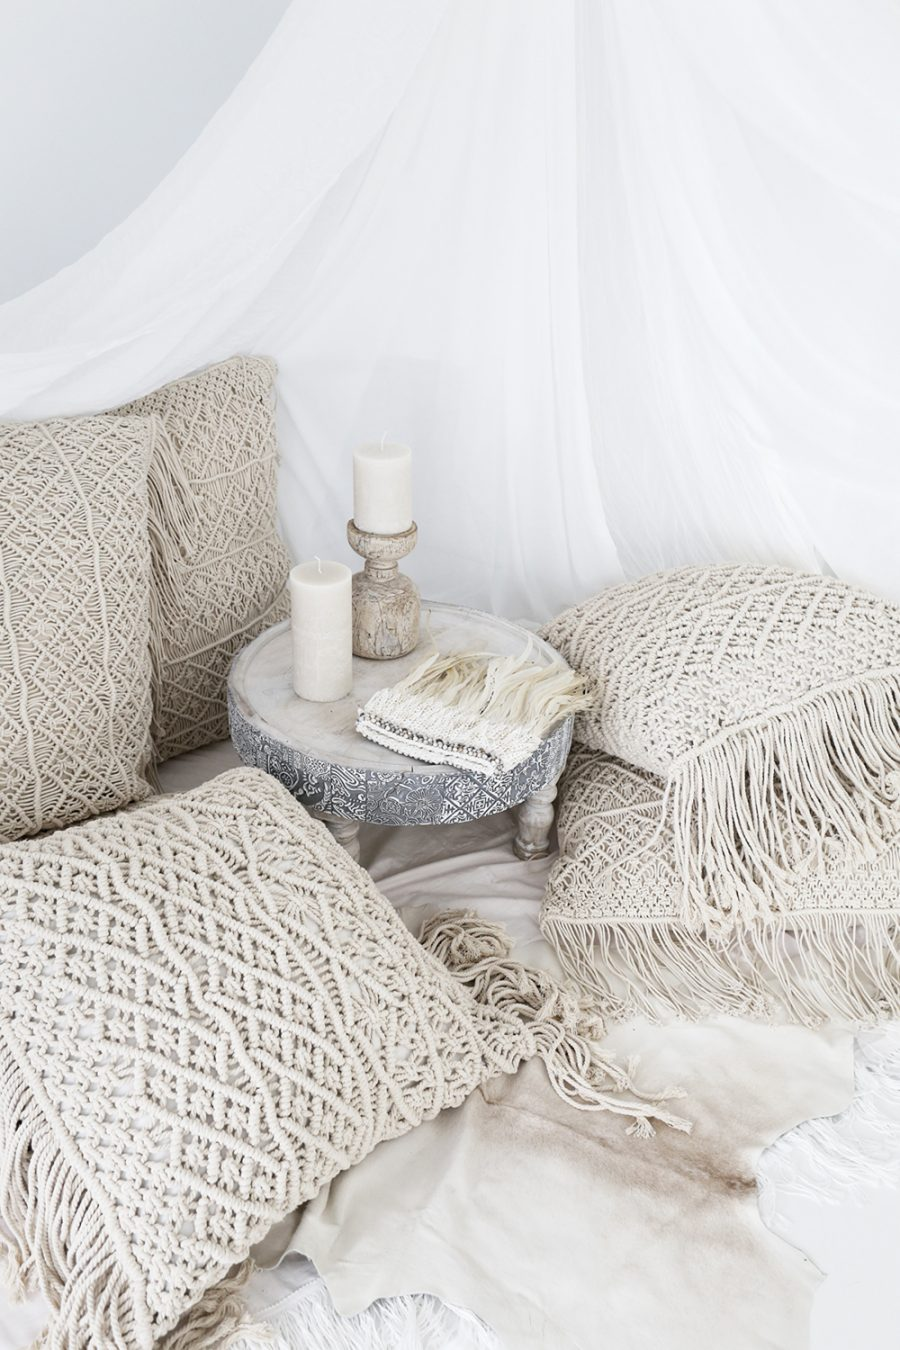 Anthropologie Fringed Diendra Pillow for $88 vs Mara Macrame Decorative Pillow for $25 copycatchic luxe living for less budget home decor and design